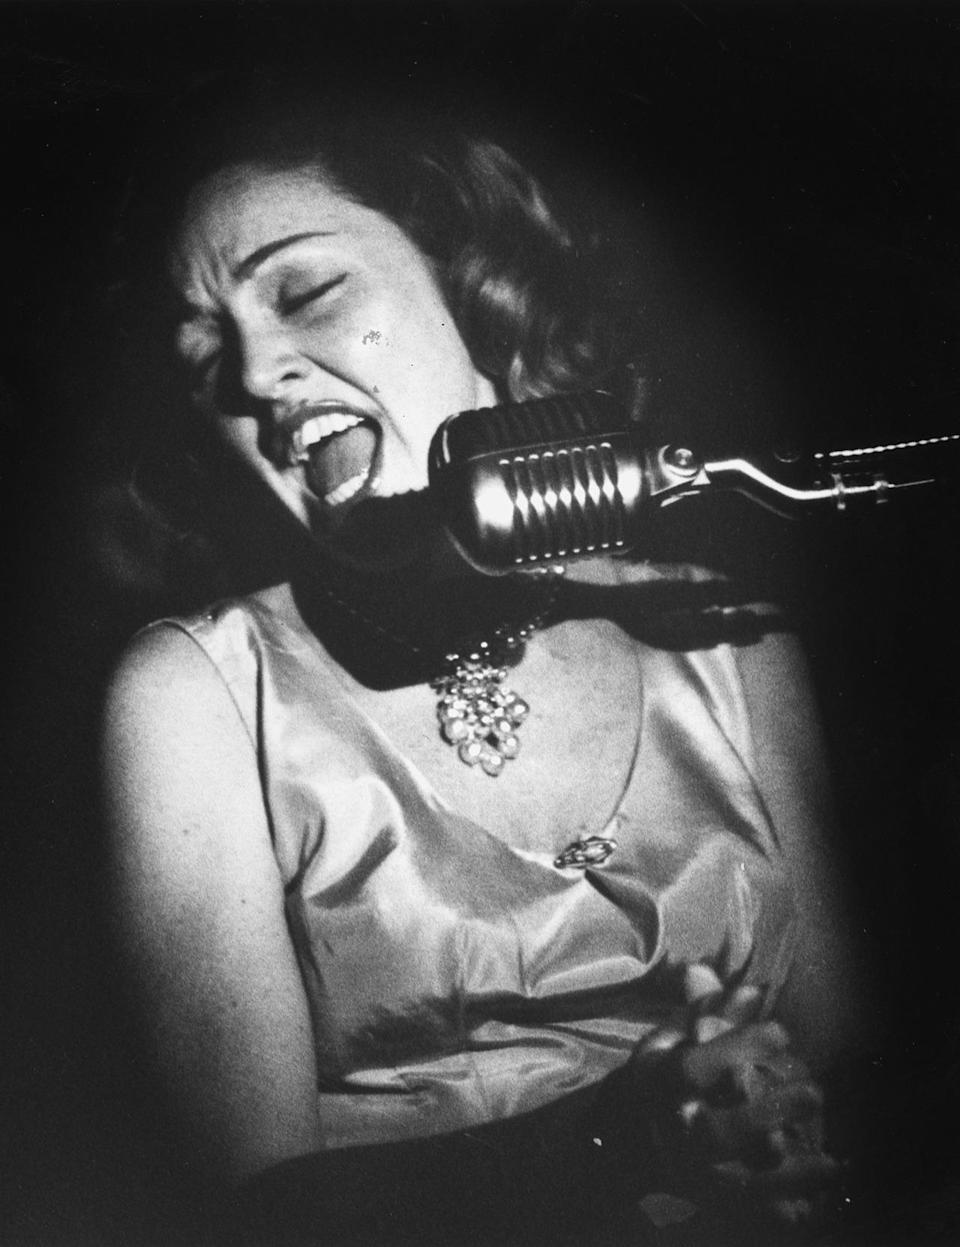 """<p>Anita O'Day (aka """"The Jezebel of Jazz"""") was recognized for launching her career as """"the girl singer"""" for big-band appearances in the late 1940s. O'Day's quick-beat vocal patterns and sense of rhythm catapulted her to the forefront of bebop singing. <a href=""""https://www.youtube.com/watch?v=DcMmVGrzpy8"""" rel=""""nofollow noopener"""" target=""""_blank"""" data-ylk=""""slk:Click here"""" class=""""link rapid-noclick-resp"""">Click here</a> to watch O'Day performing at the 1958 Newport Jazz Festival, where she channels Holly Golightly (albeit three years before <i>Breakfast at Tiffany's</i> was released). <i>(Photo: Getty Images)</i></p>"""